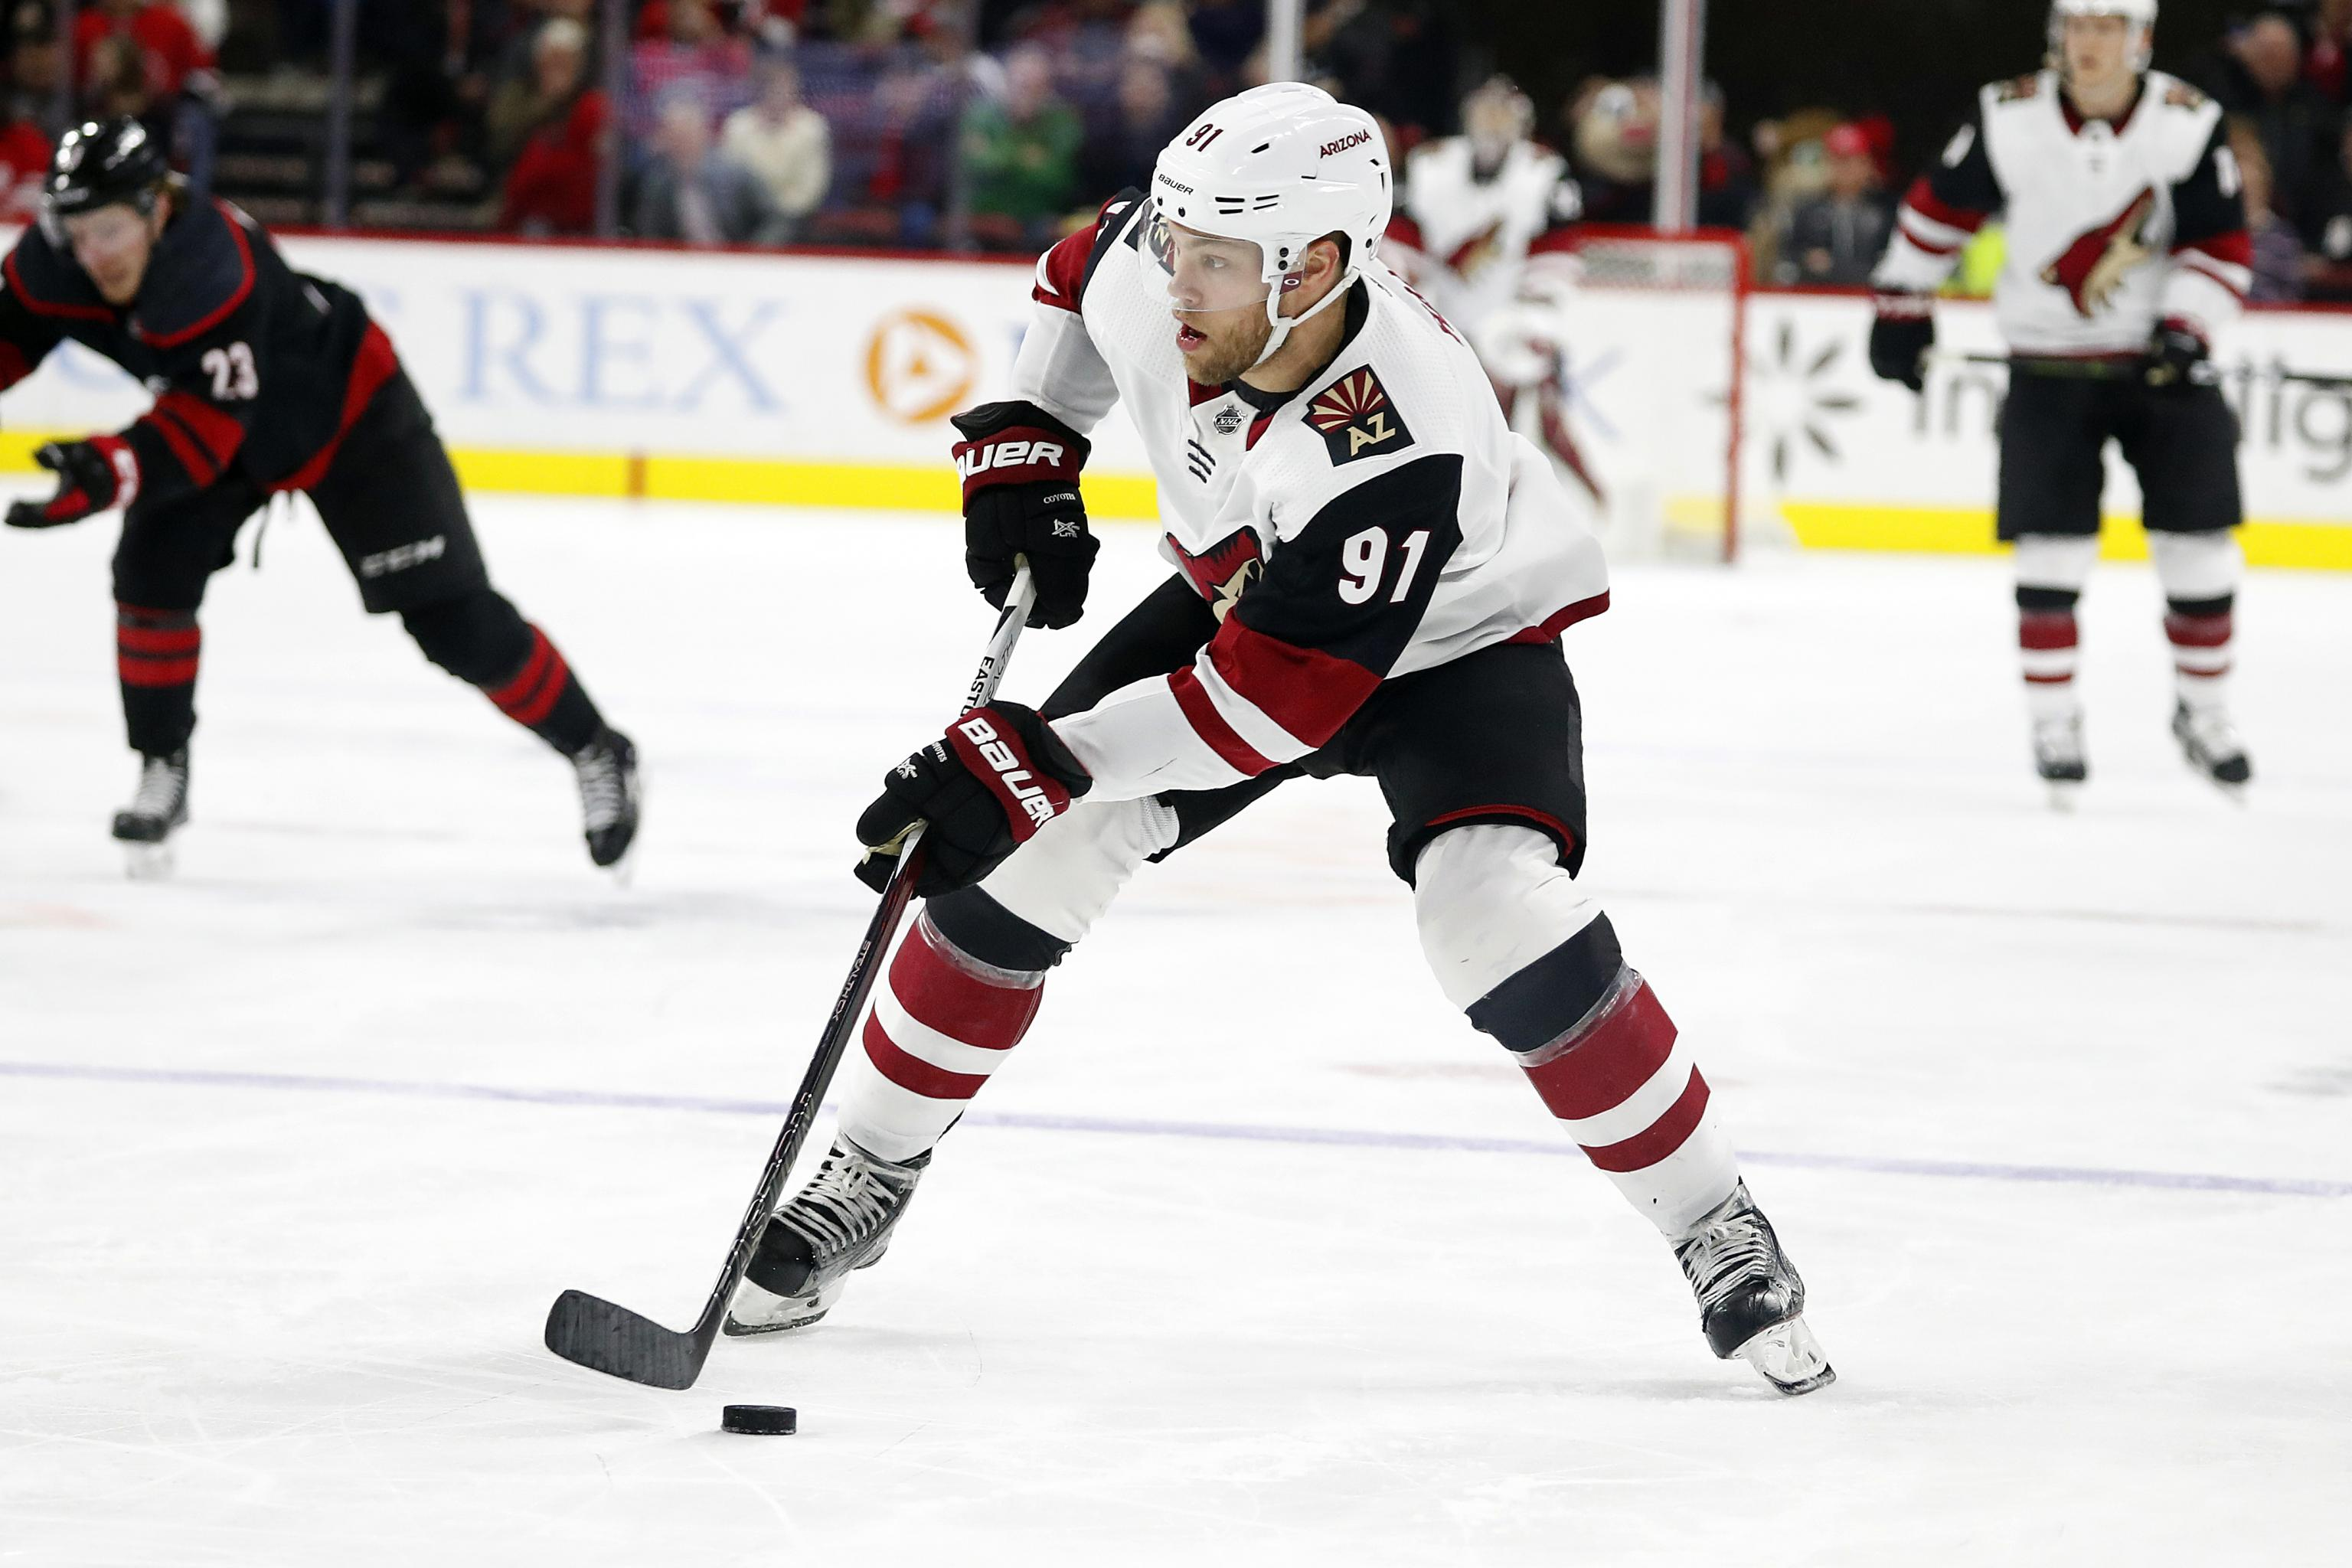 Nhl Rumors Latest Buzz On Taylor Hall Contract Anthony Cirelli More Bleacher Report Latest News Videos And Highlights